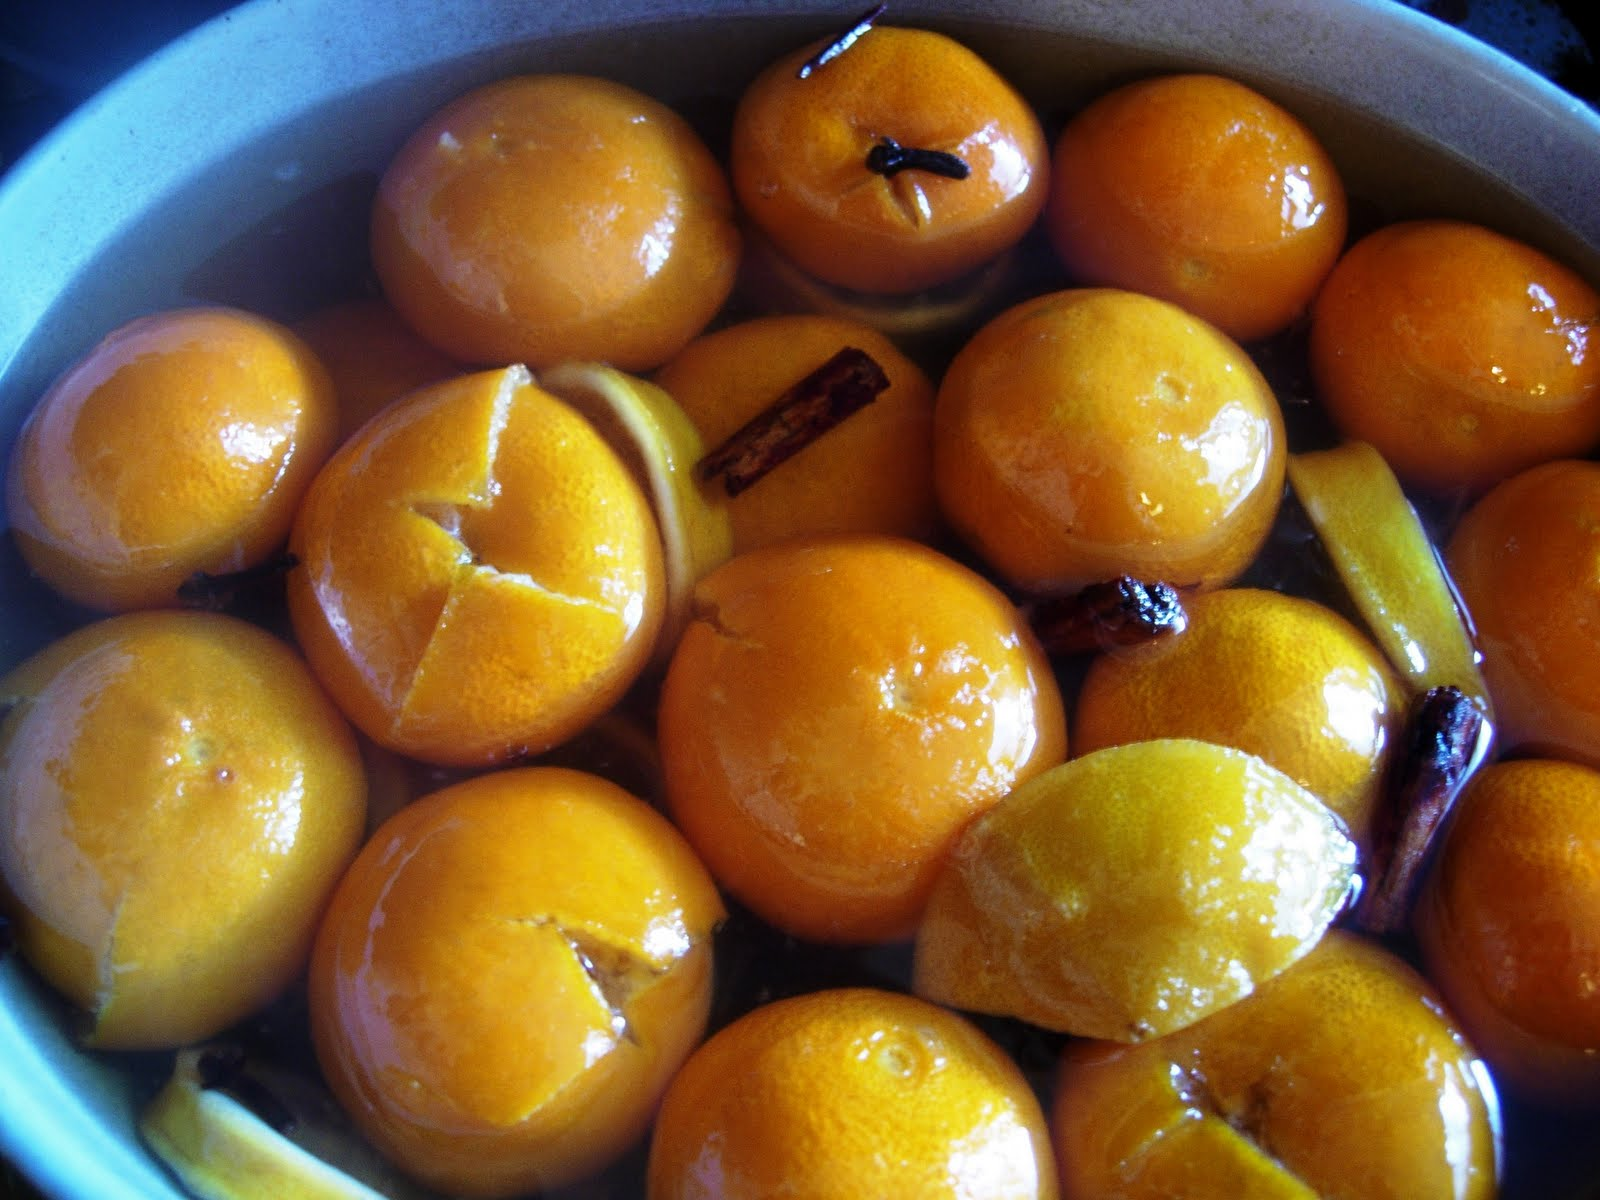 ... foodie things #2 - Preserved Clementines in a spiced ginger syrup